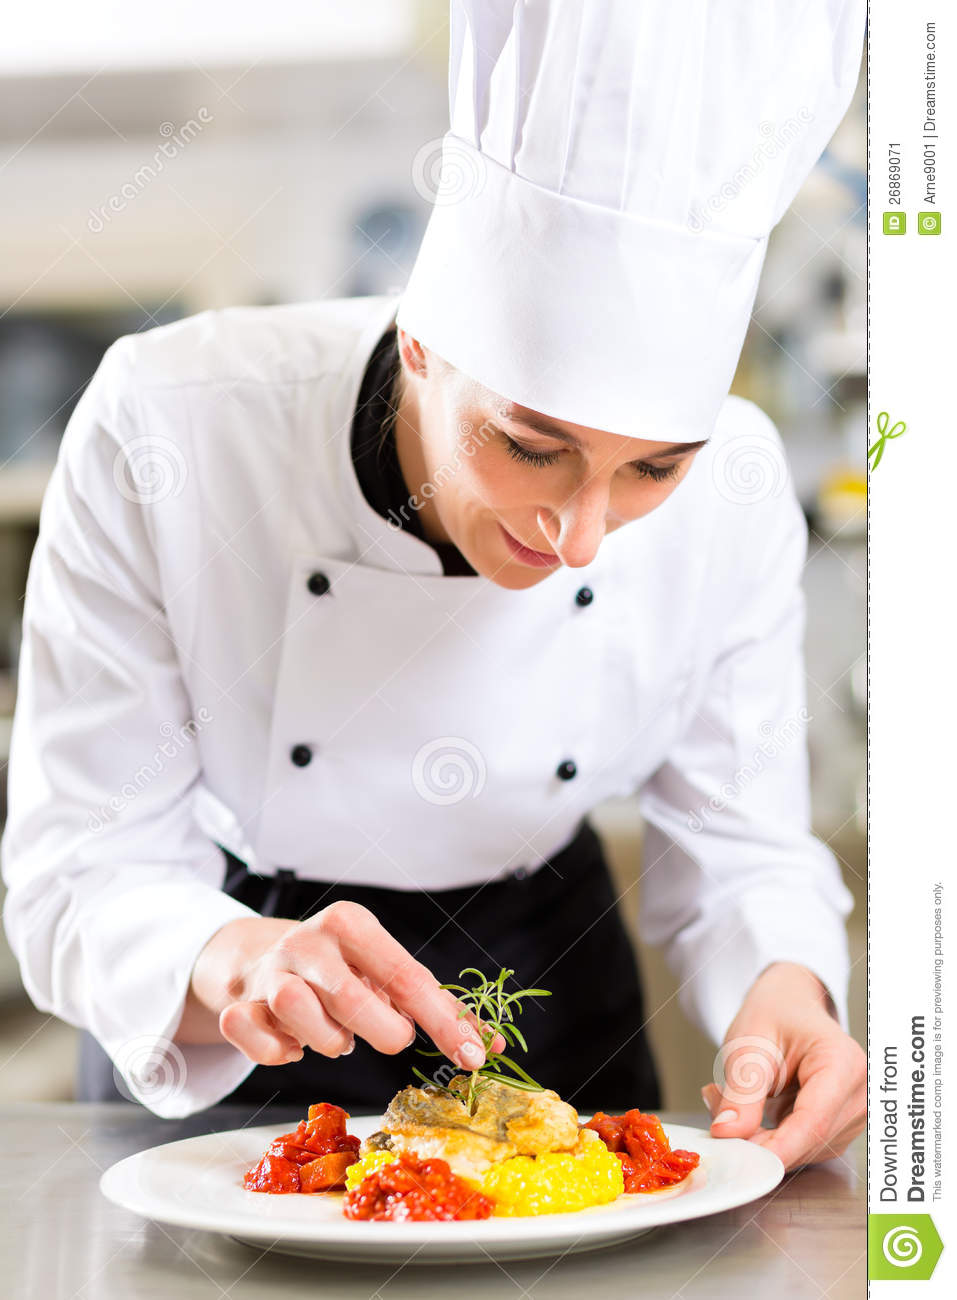 Female Chef In Restaurant Kitchen Cooking Stock Image ...